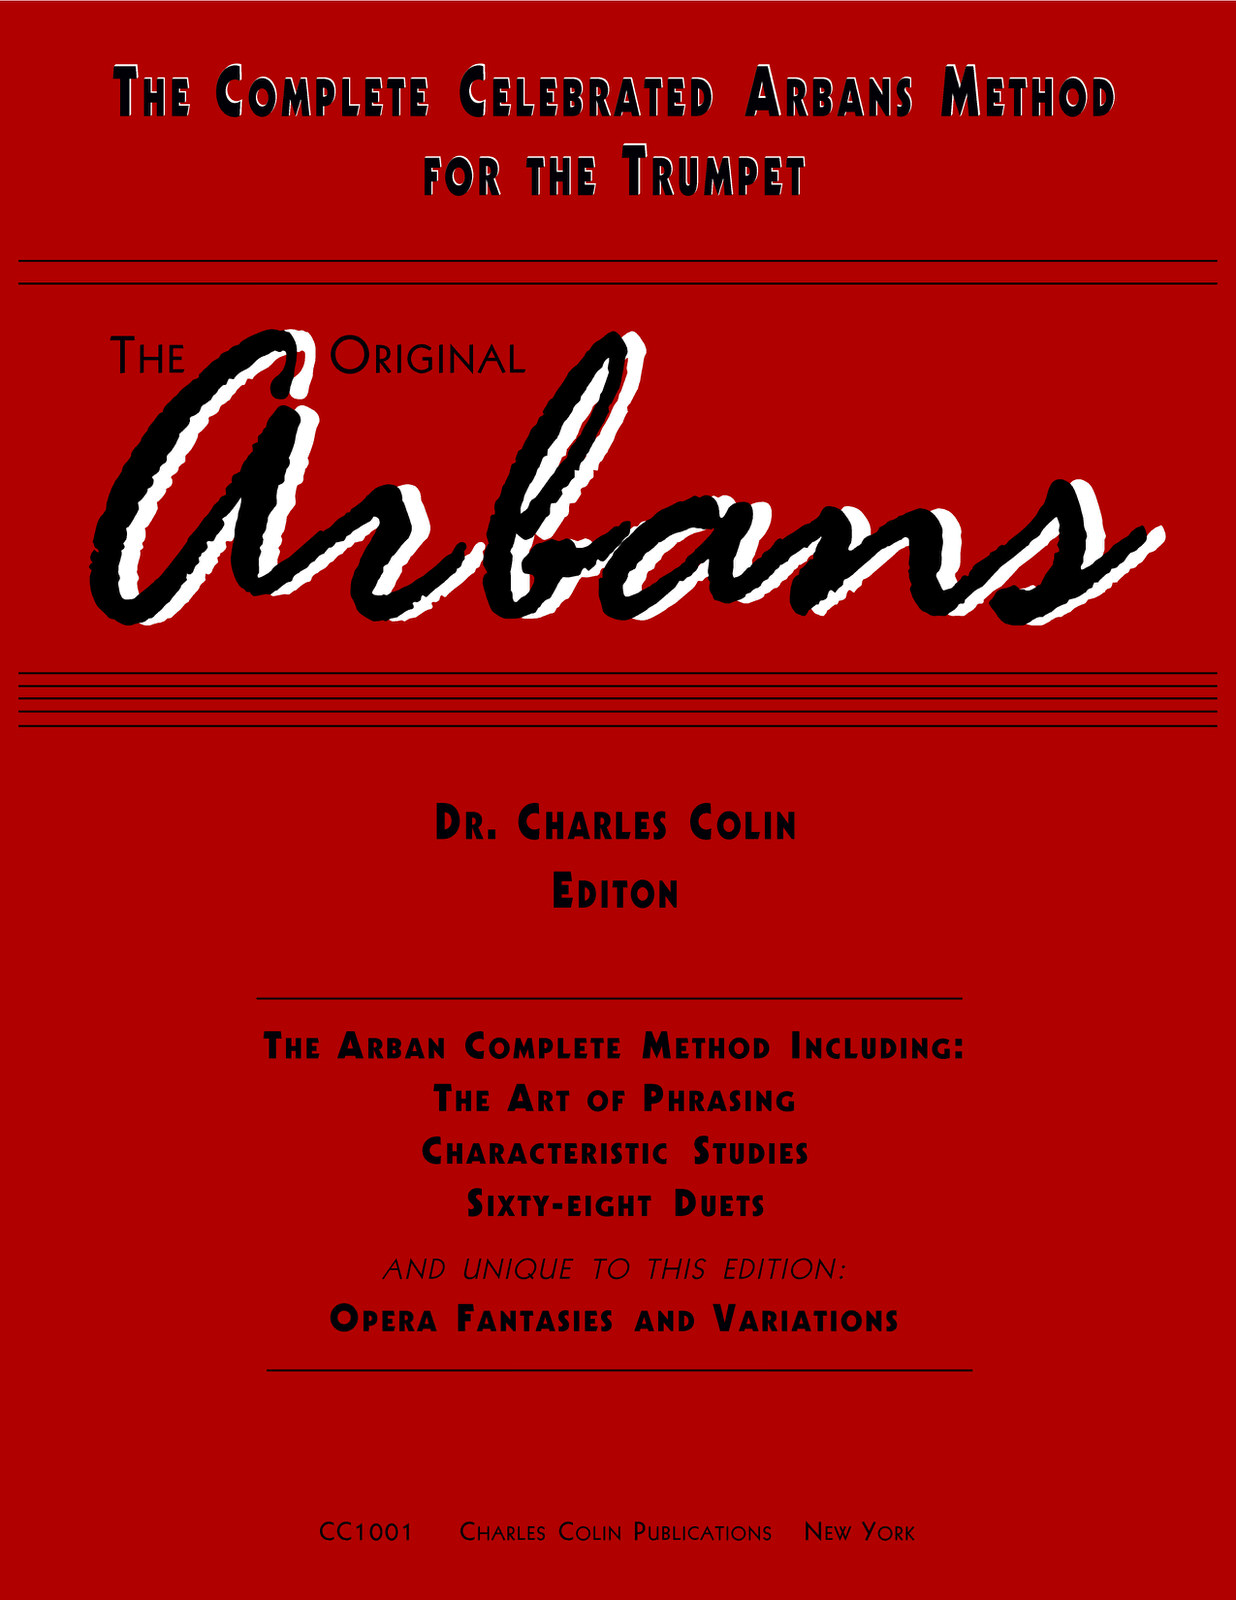 Complete celebrated method by arban jean baptiste qpress arban colin edition cover arban conservatory method fandeluxe Image collections